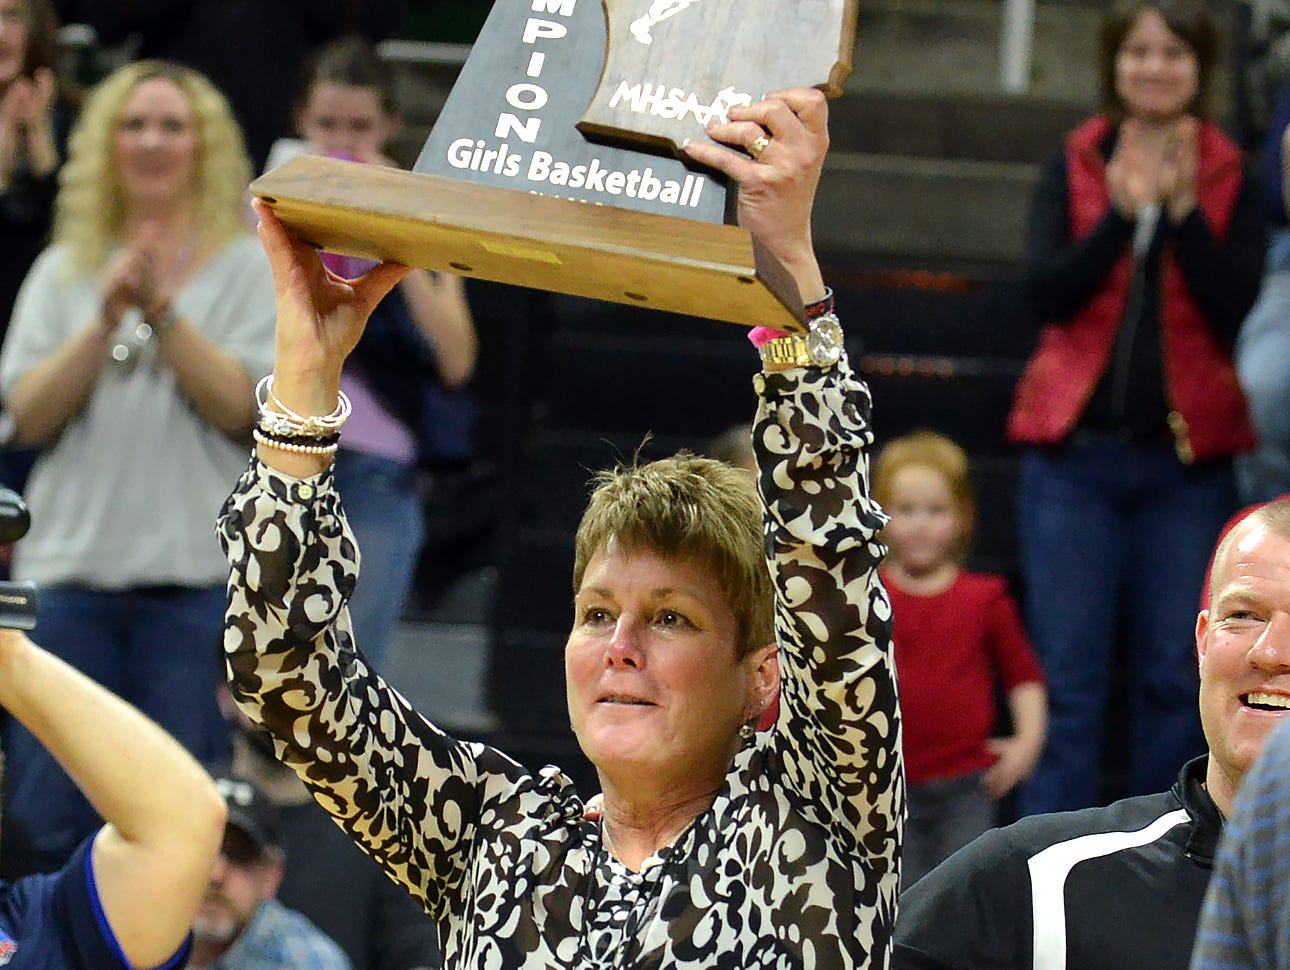 Marshall head coach Sal Konkle shows of the 2016 MHSAA Class B State Championship trophy at the Michigan State University Breslin Center.